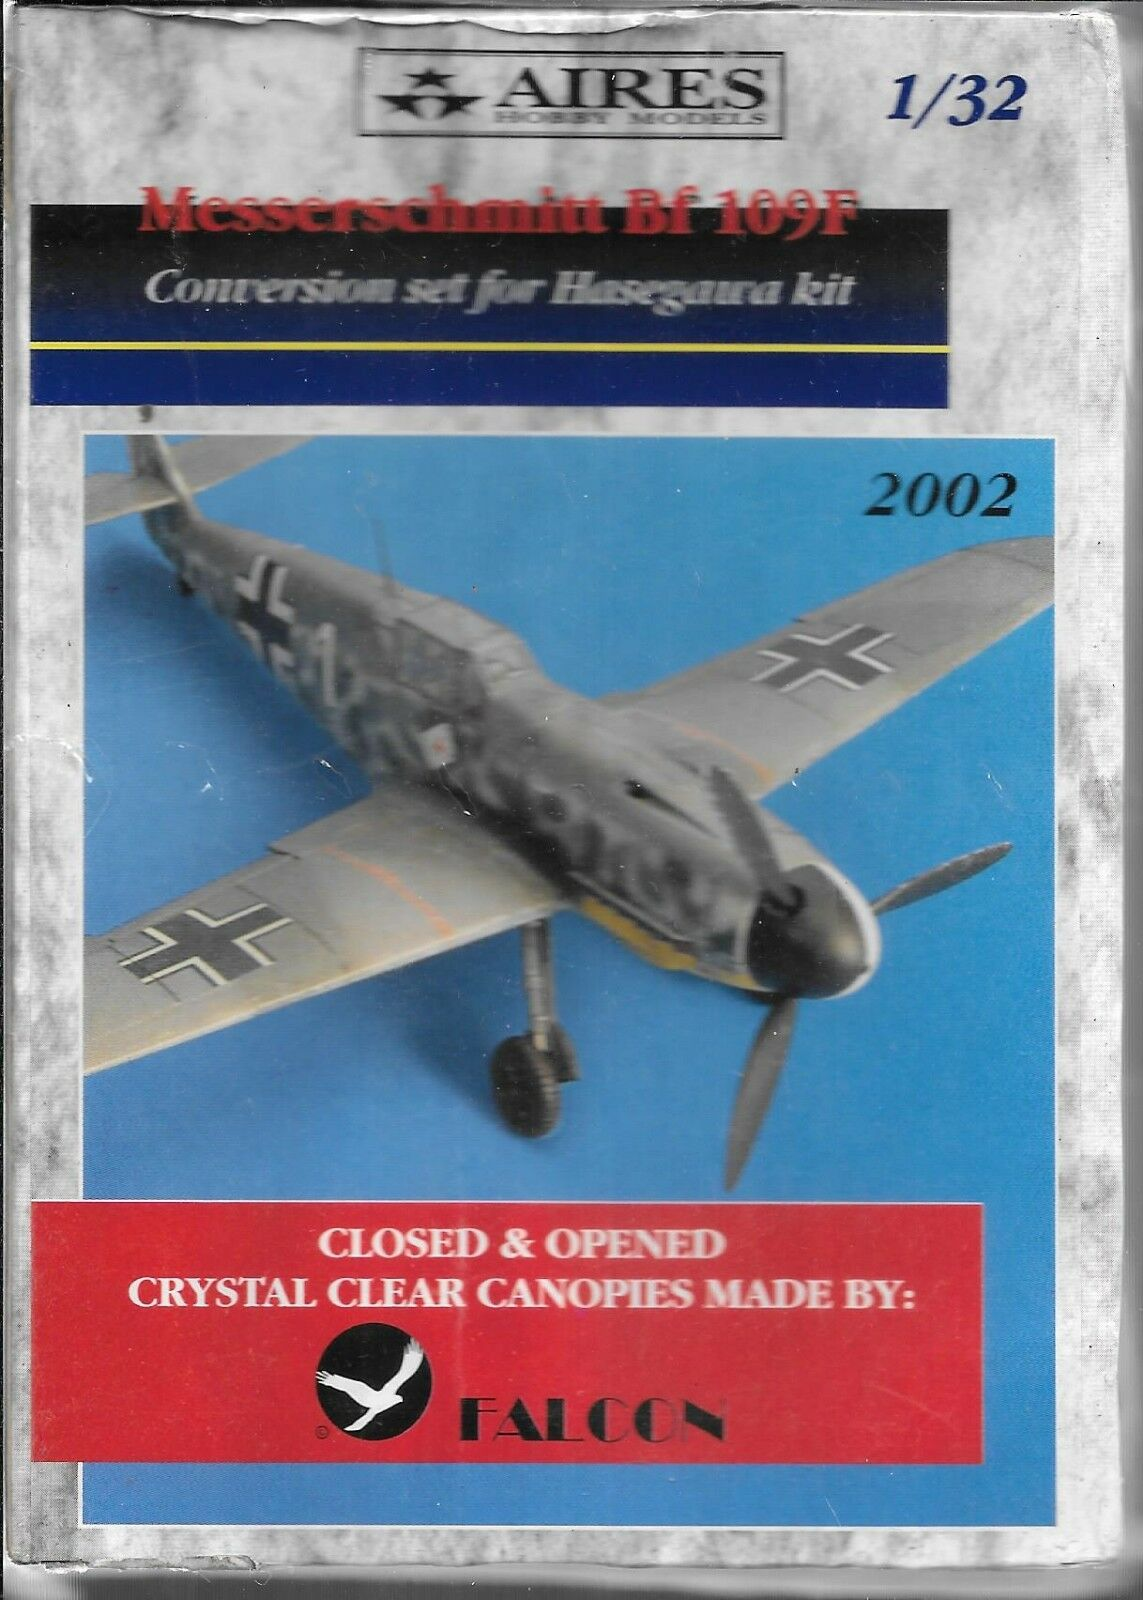 Aires Messerschmitt Bf-109F Conversion Set For Hasegawa Kit in 1 32 2002 DO